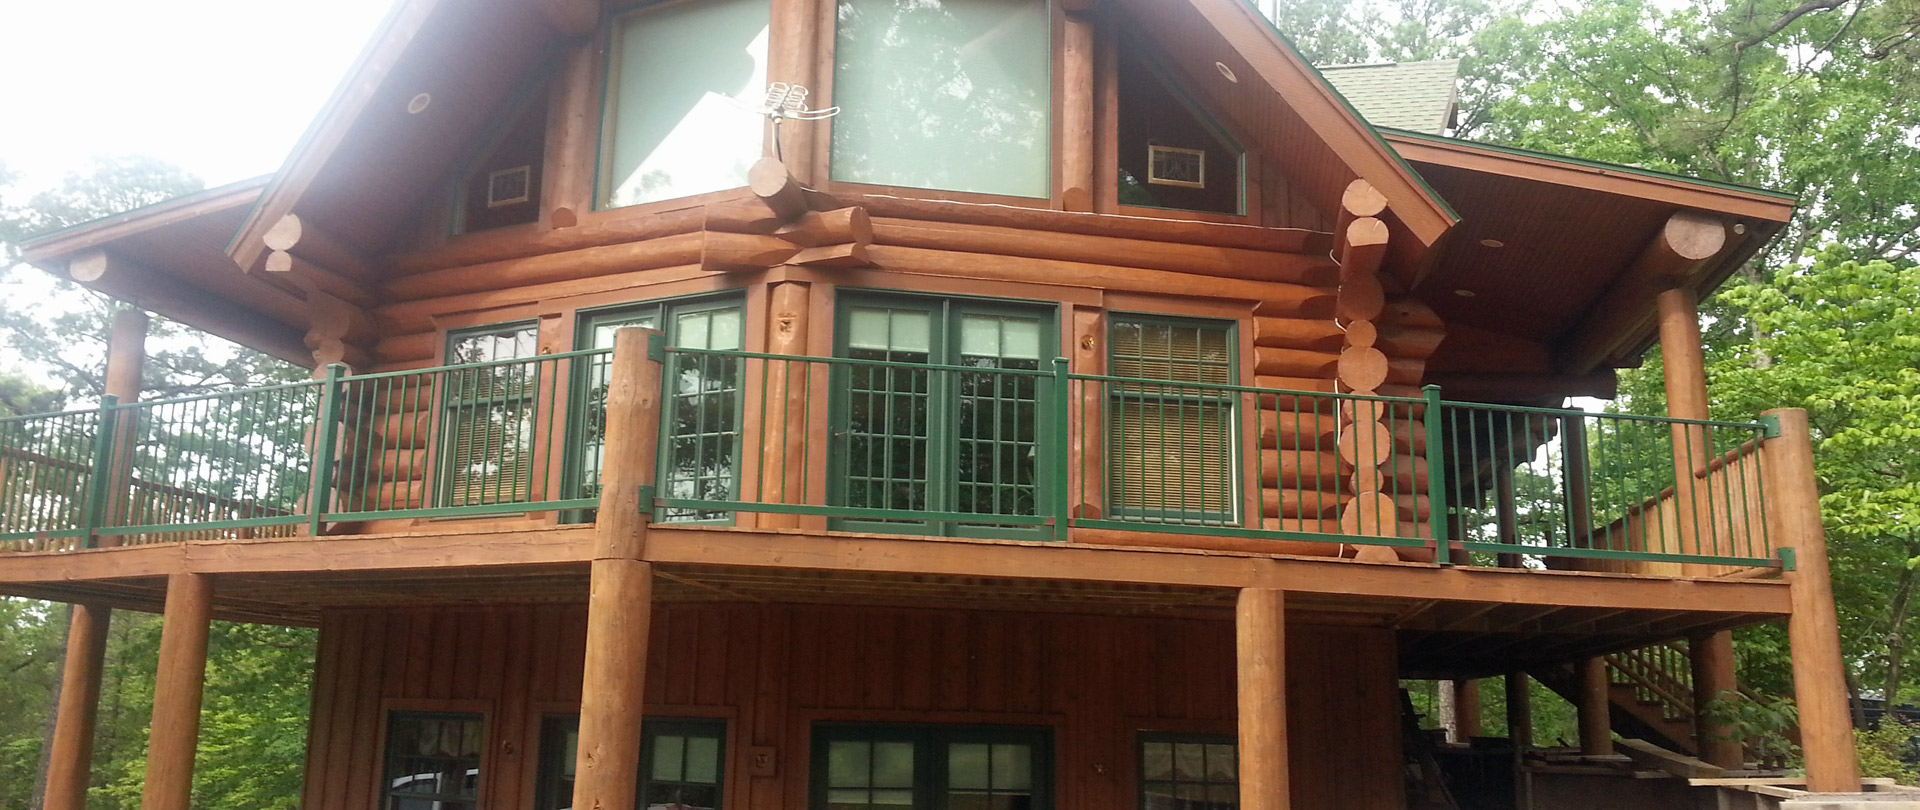 Contact us to restore your log home to its original beauty